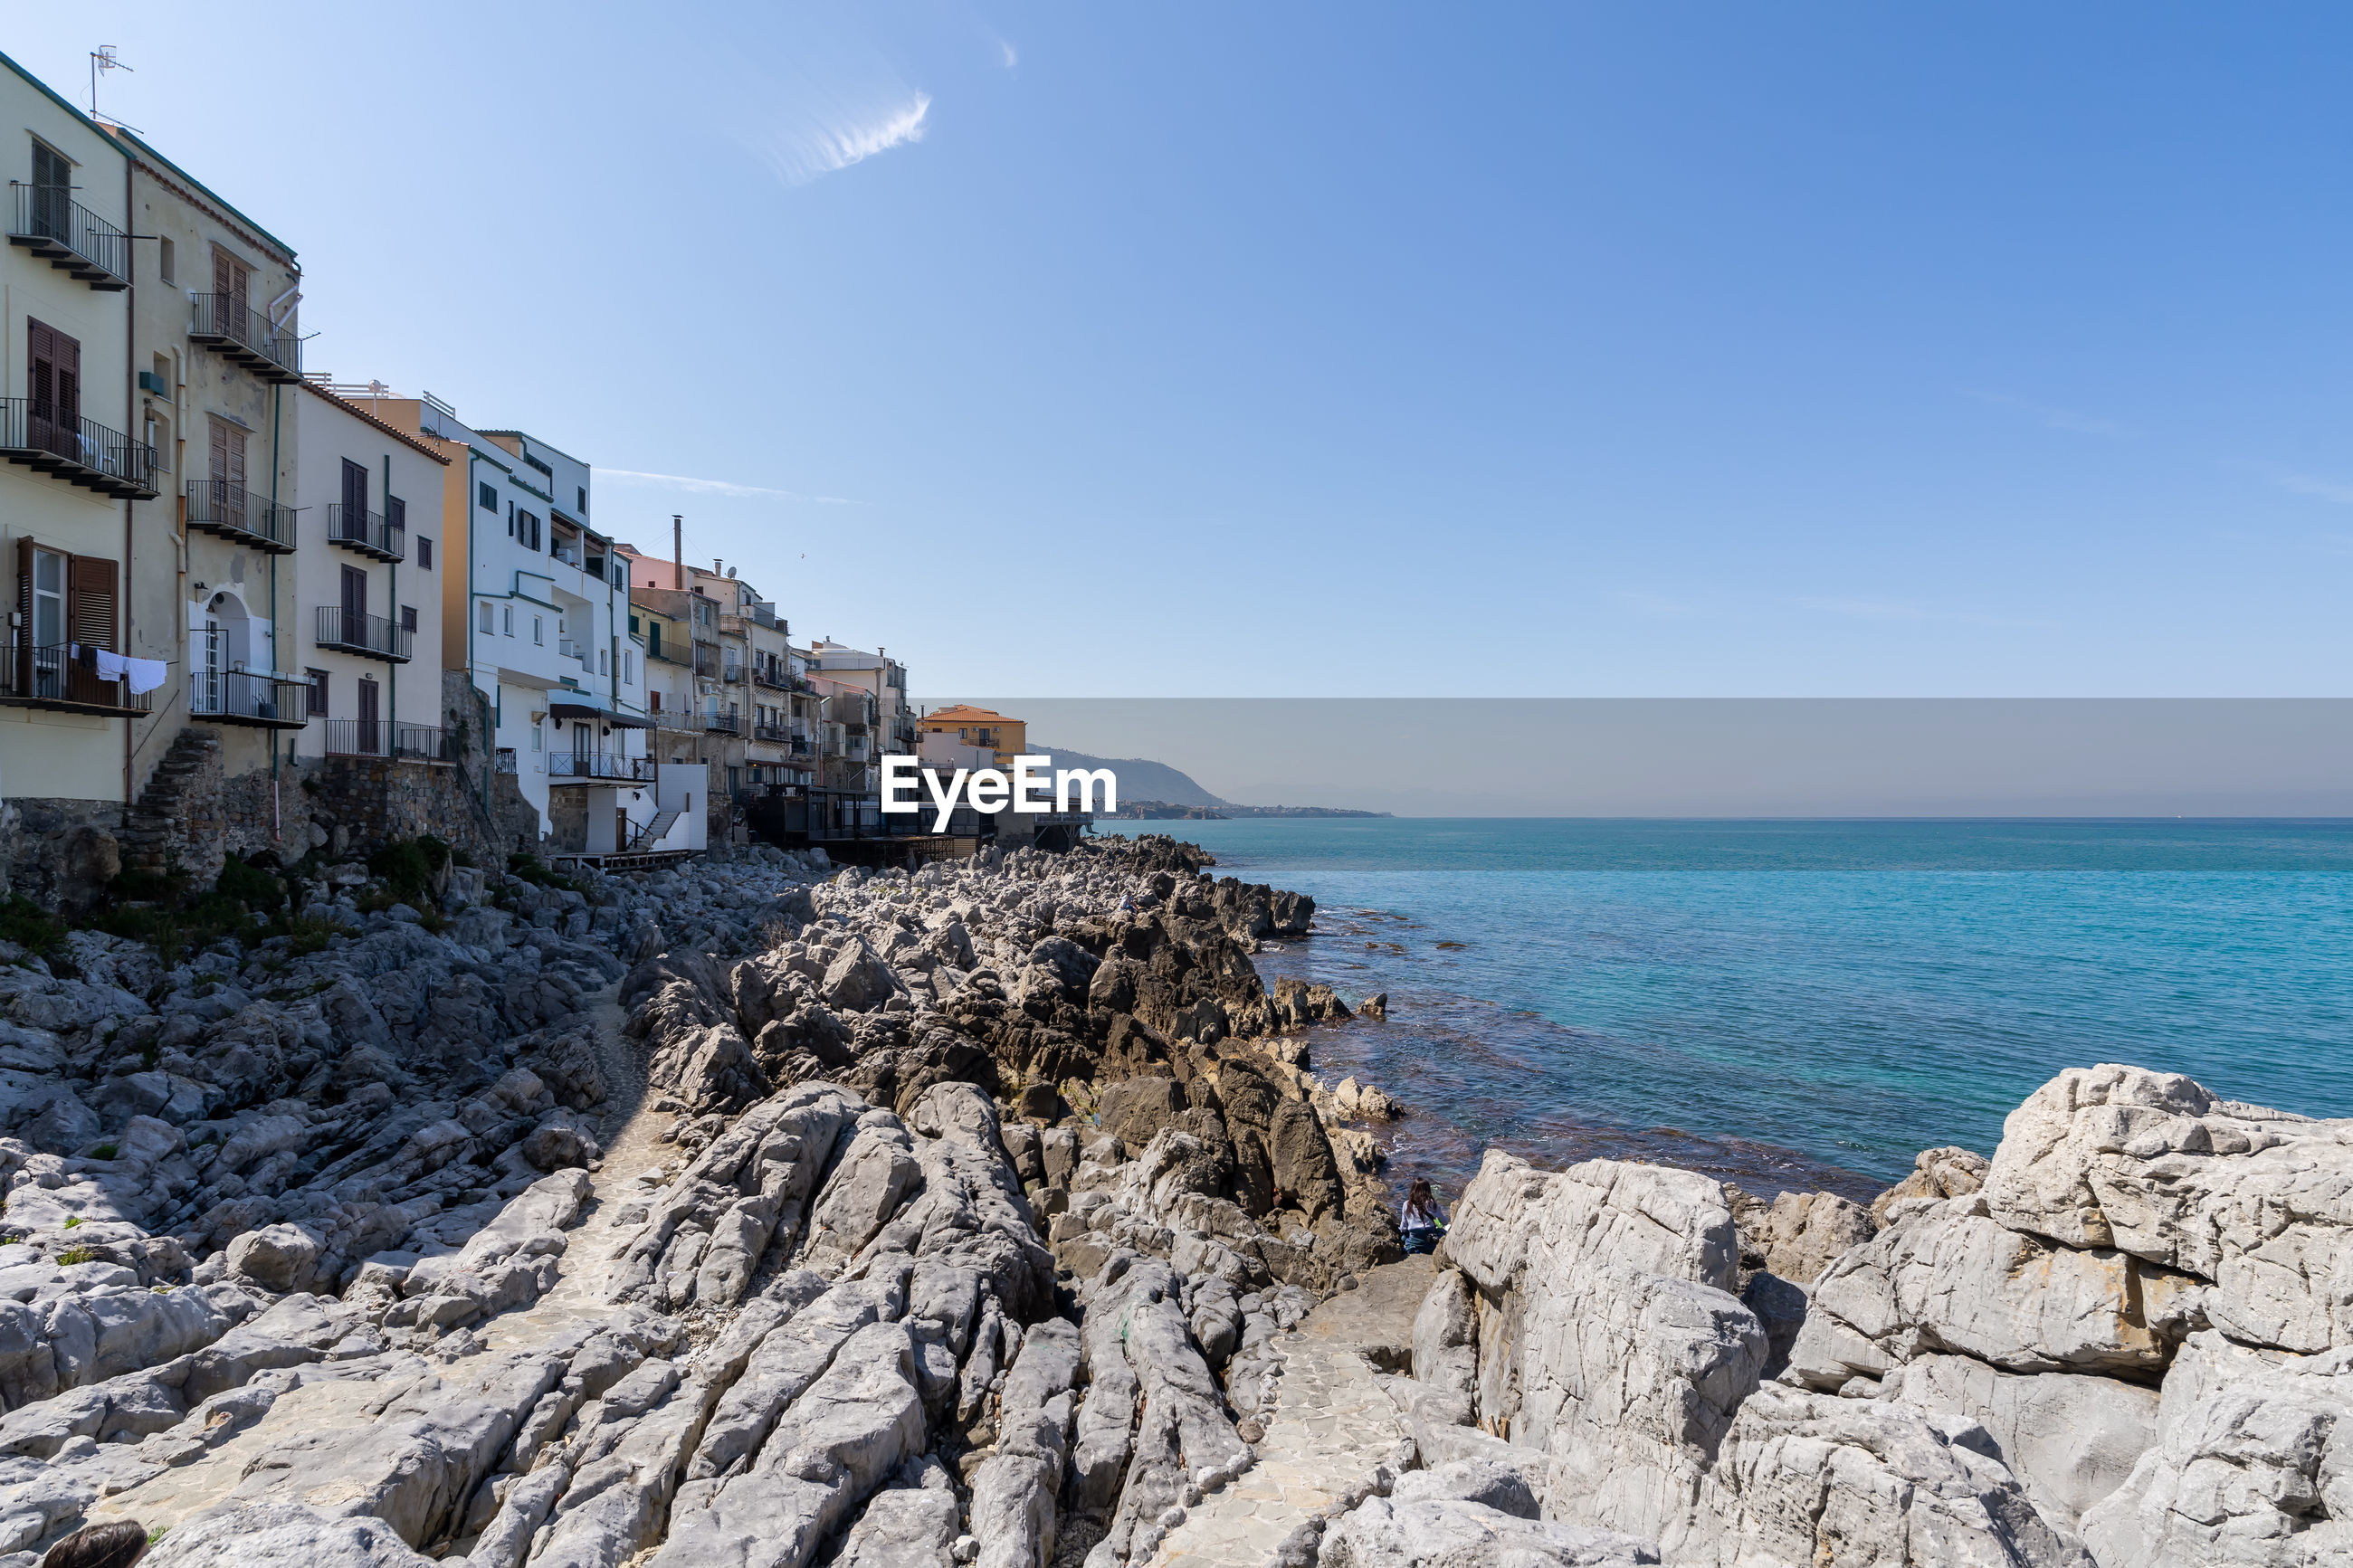 PANORAMIC VIEW OF SEA AGAINST SKY